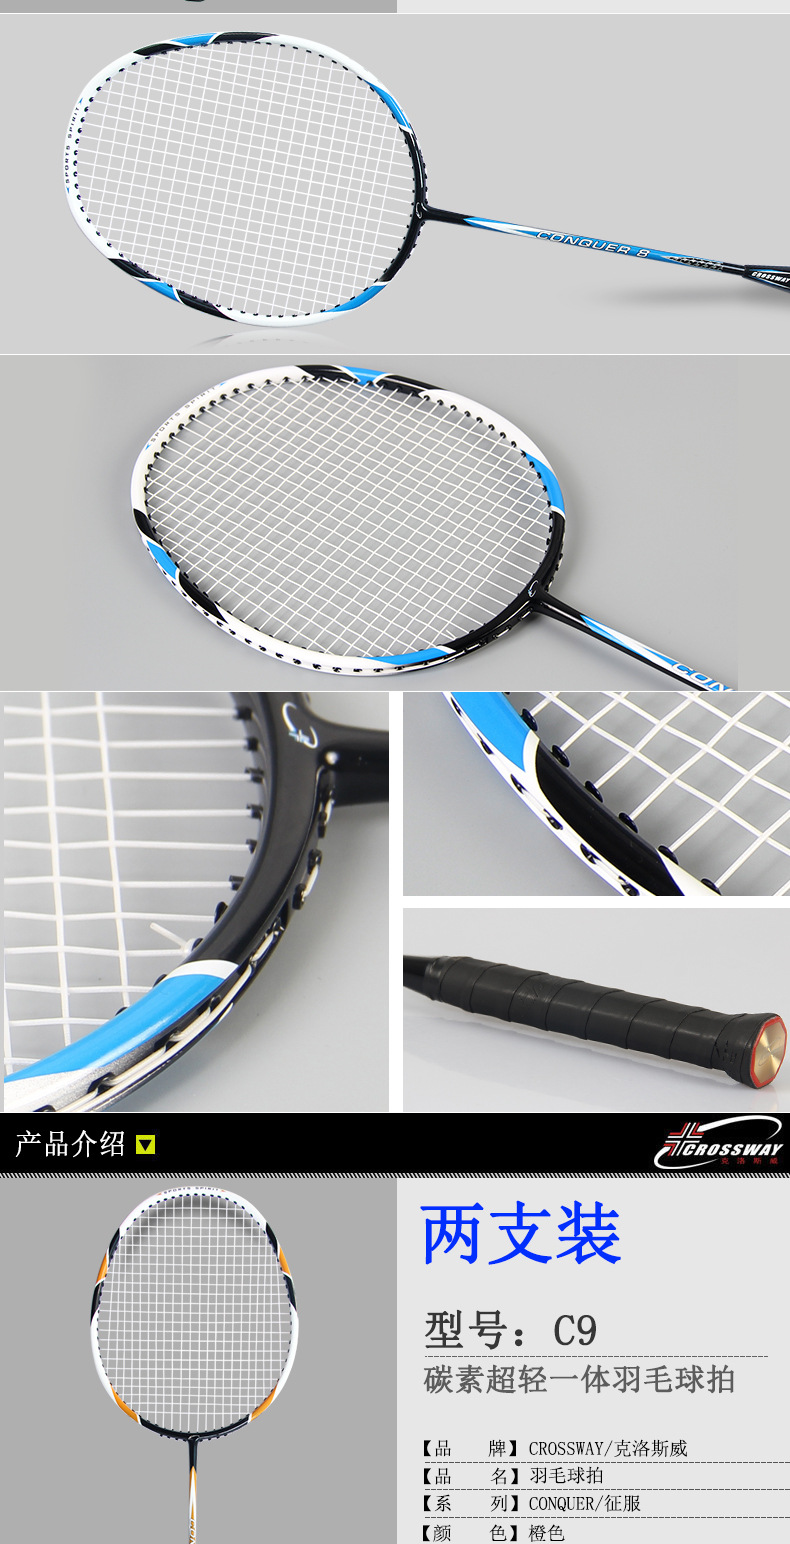 Crossway 2Pcs Best Doubles Match Badminton Rackets Carbon Smash Championships Shuttlecock Speedminton Racquets Equipment Kit Set 21